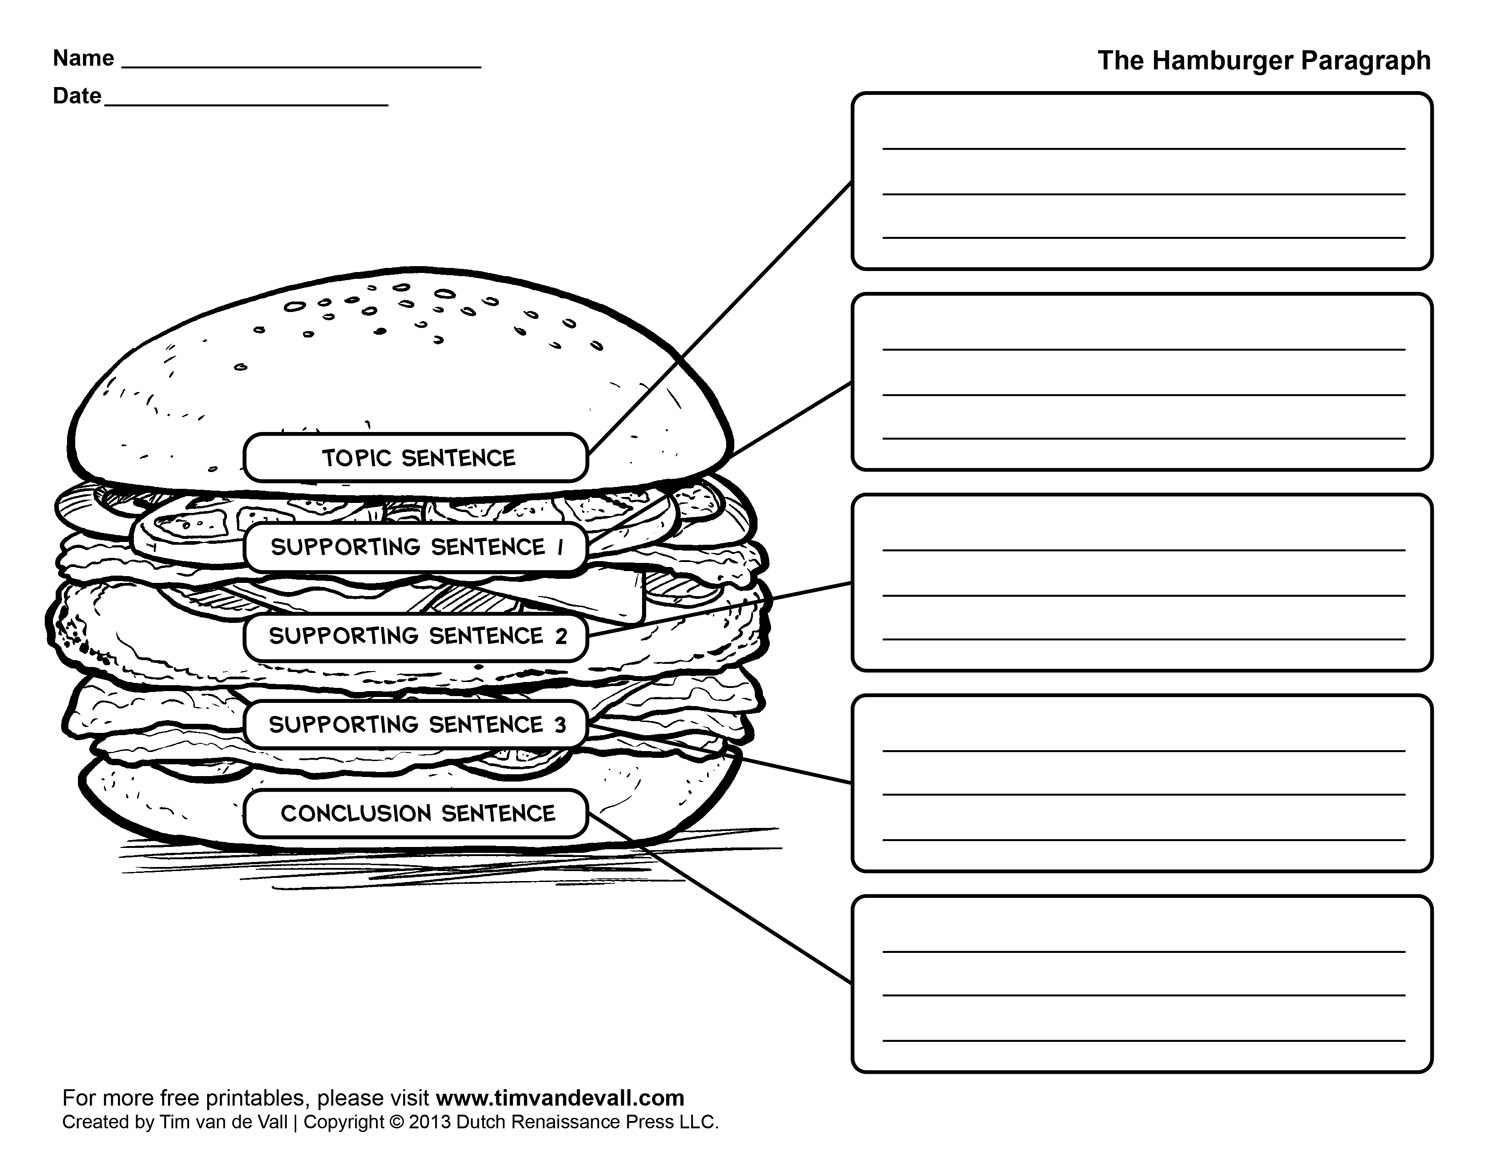 Workbooks speech worksheets : Hamburger Paragraph Worksheet | Language Arts Printables